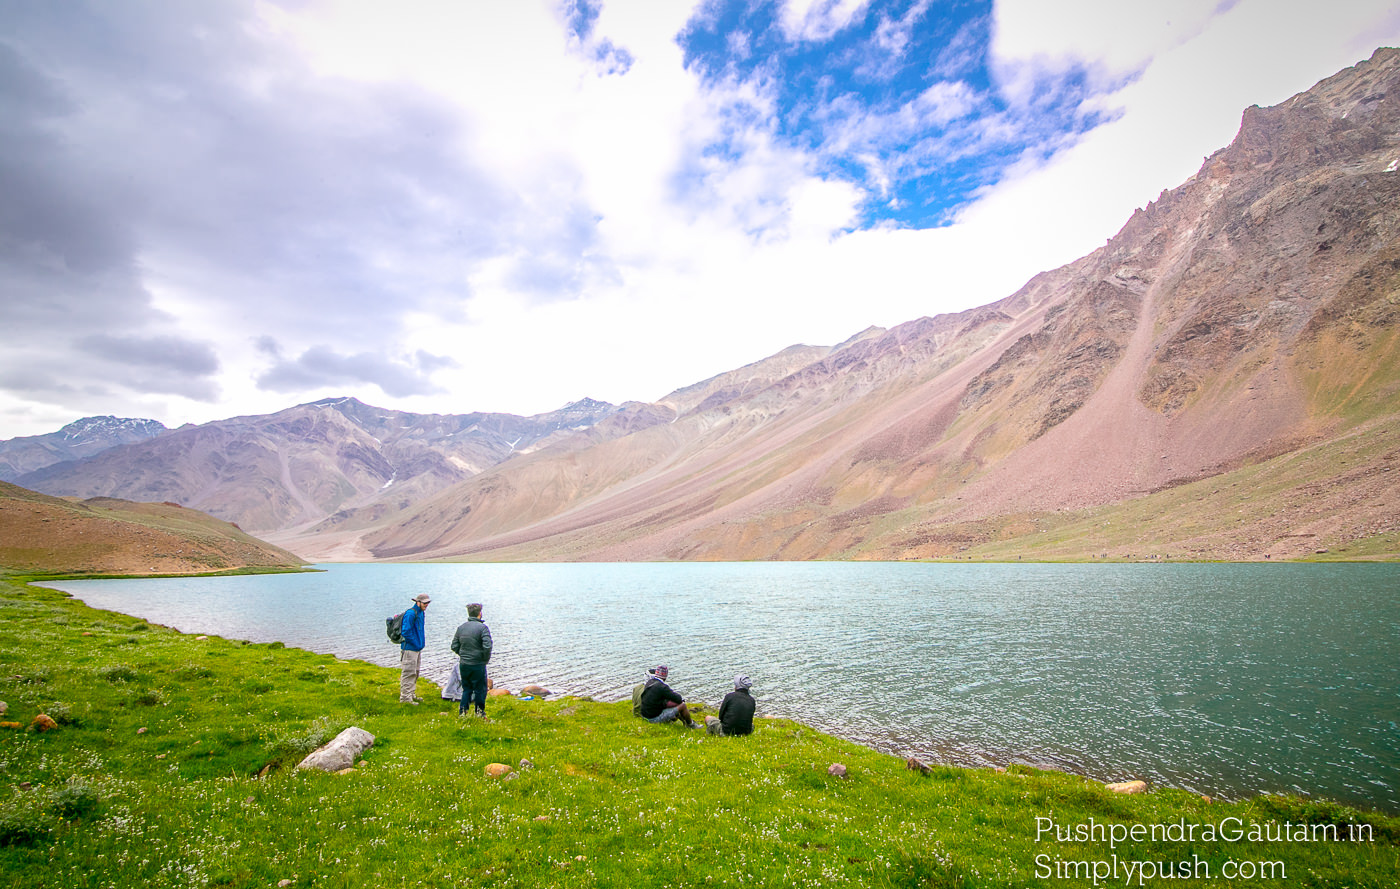 how-to-plan-a-trip-to-spiti-valley-in-budget-best-travel-lifestyle-photographer-pushpendra-gautam